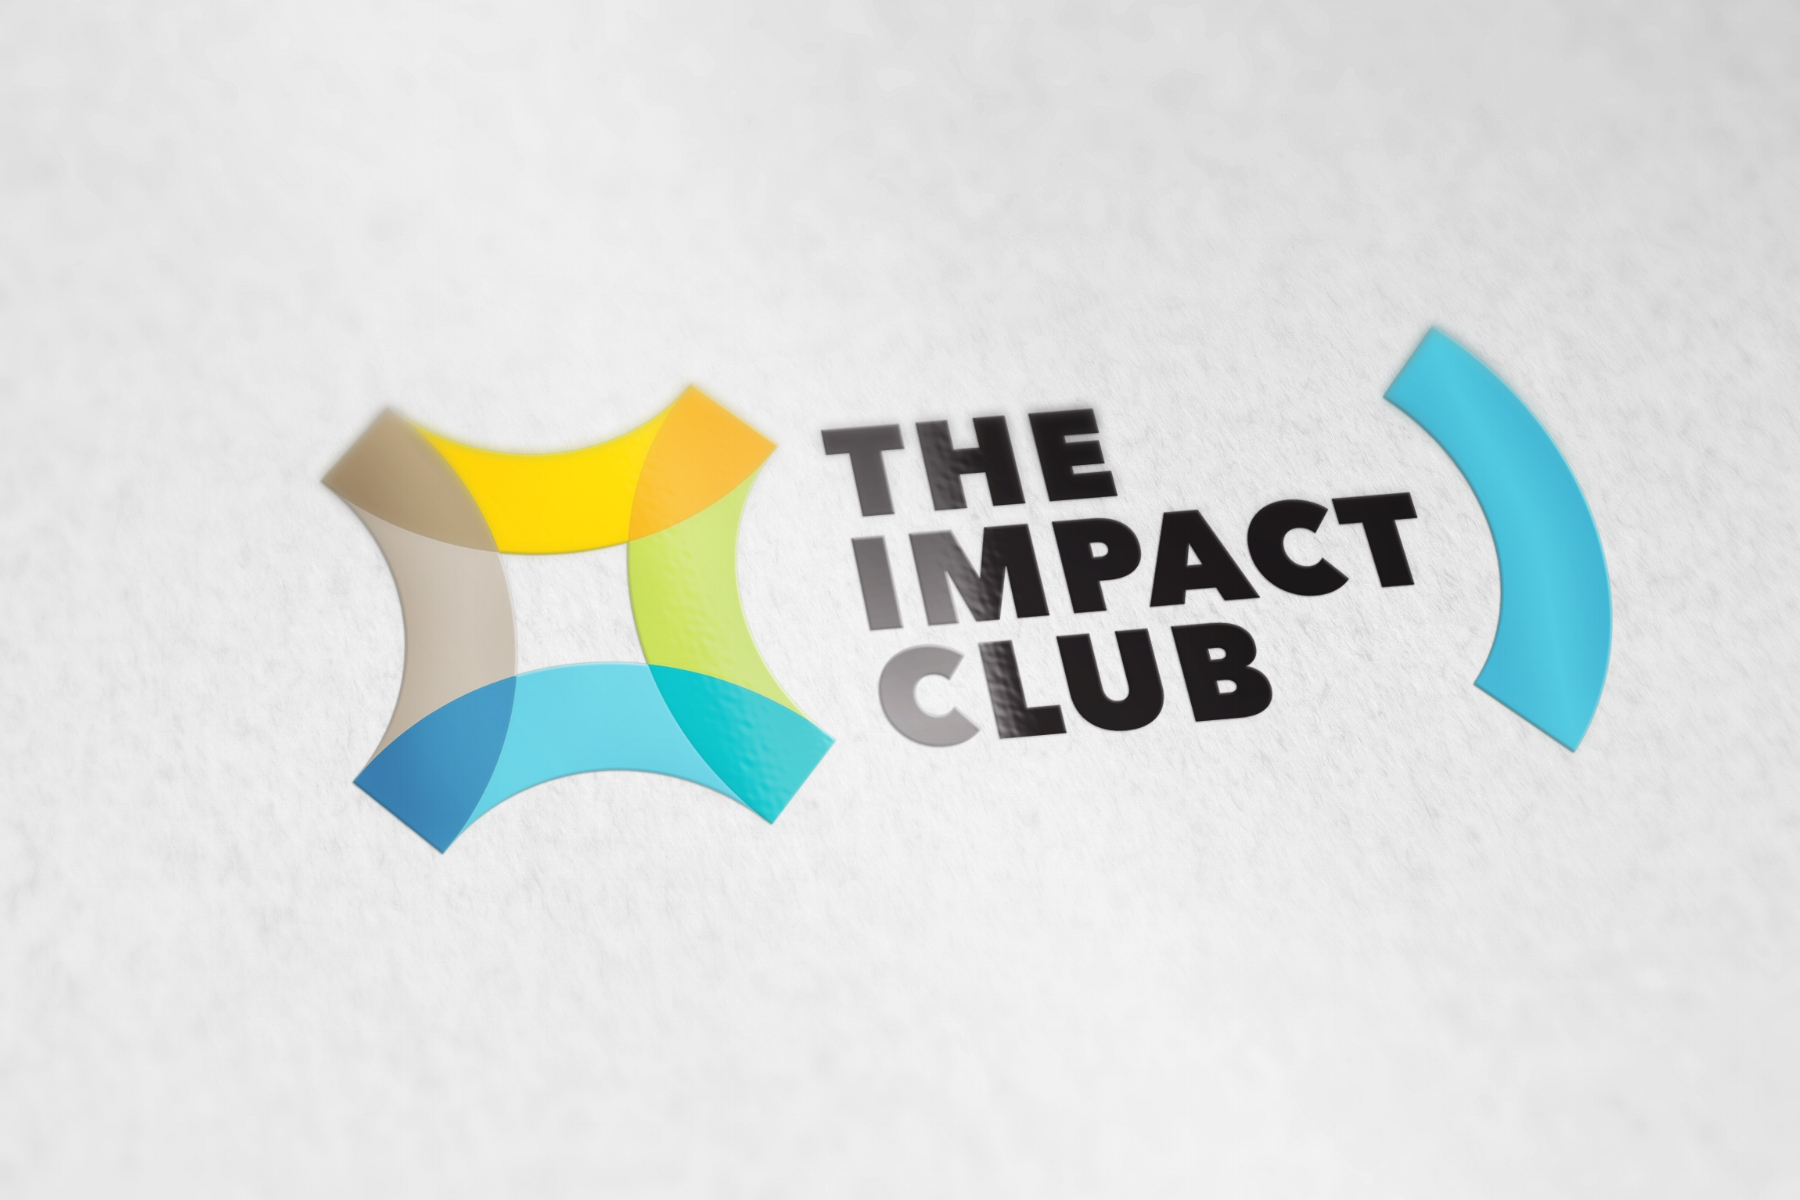 The Impact Club Investment Company